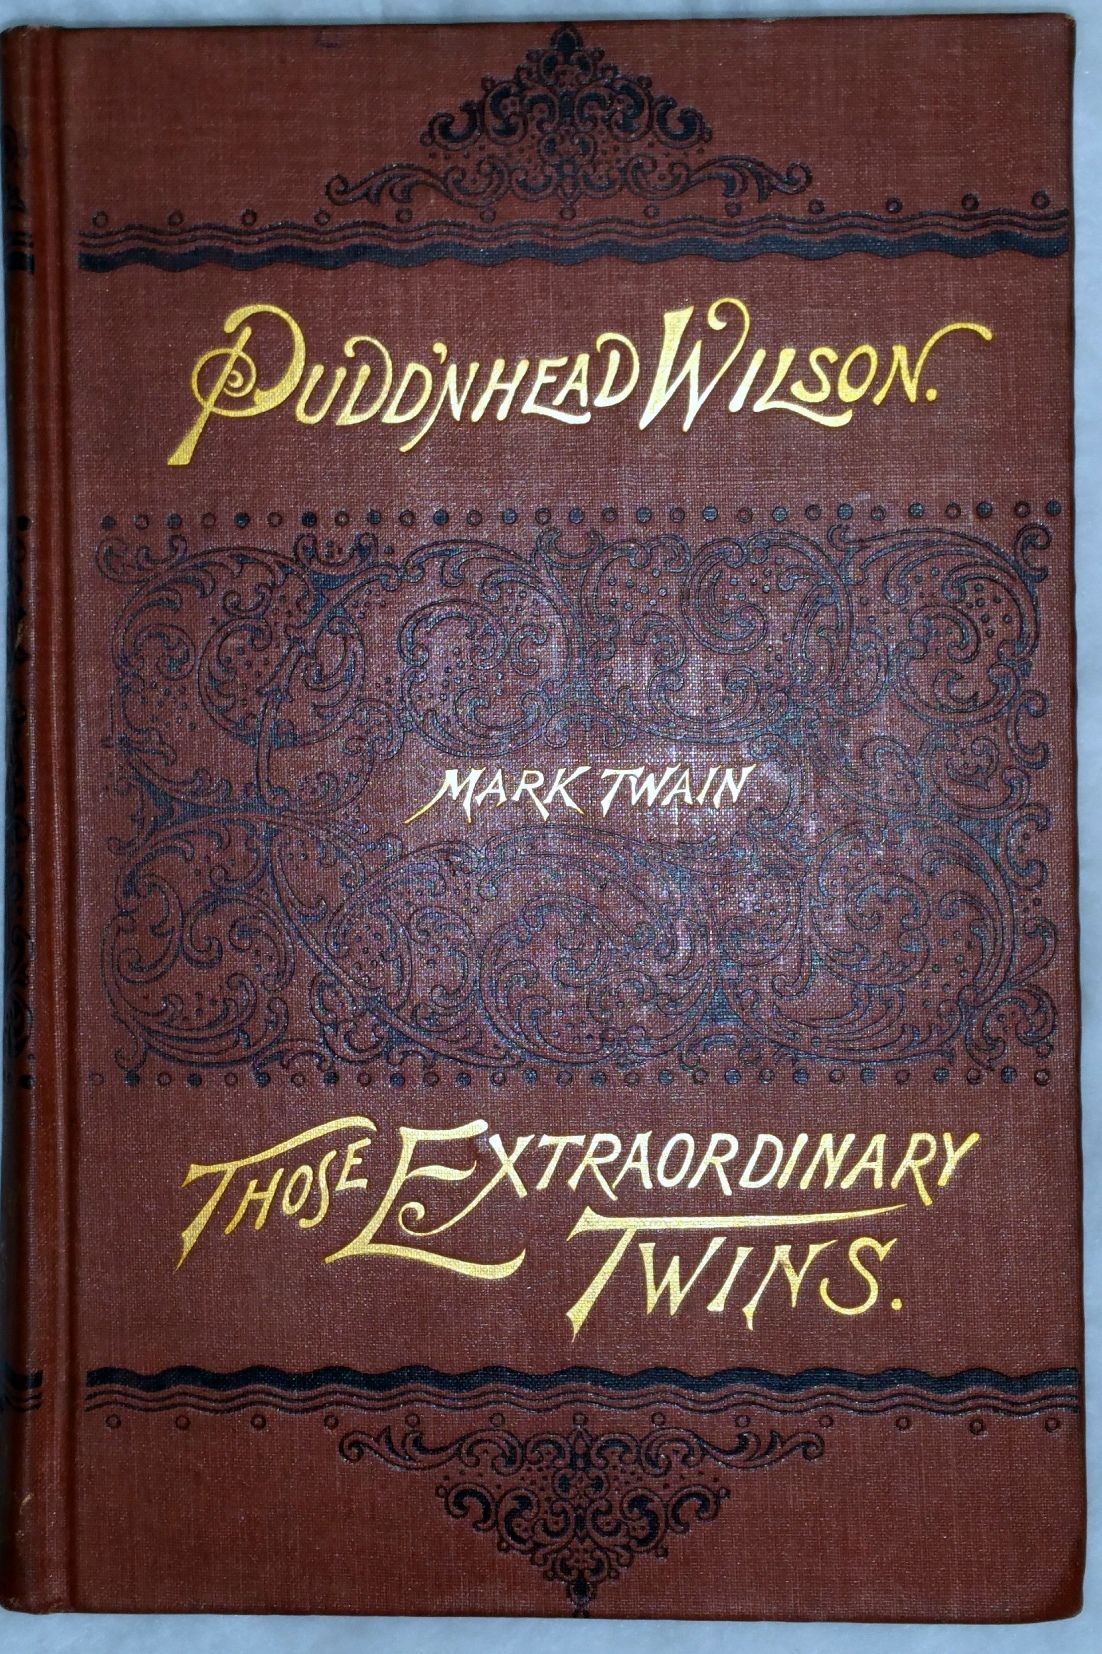 pudd nhead wilson and those extraordinary twins The comic tragedy of pudd'nhead wilson, then, serves up the cold lesson that is often repeated in law and courts courses—sometimes the law, despite its best intentions, is a source of great misfortune for those who either intentionally or unwittingly become entangled in the judicial process.